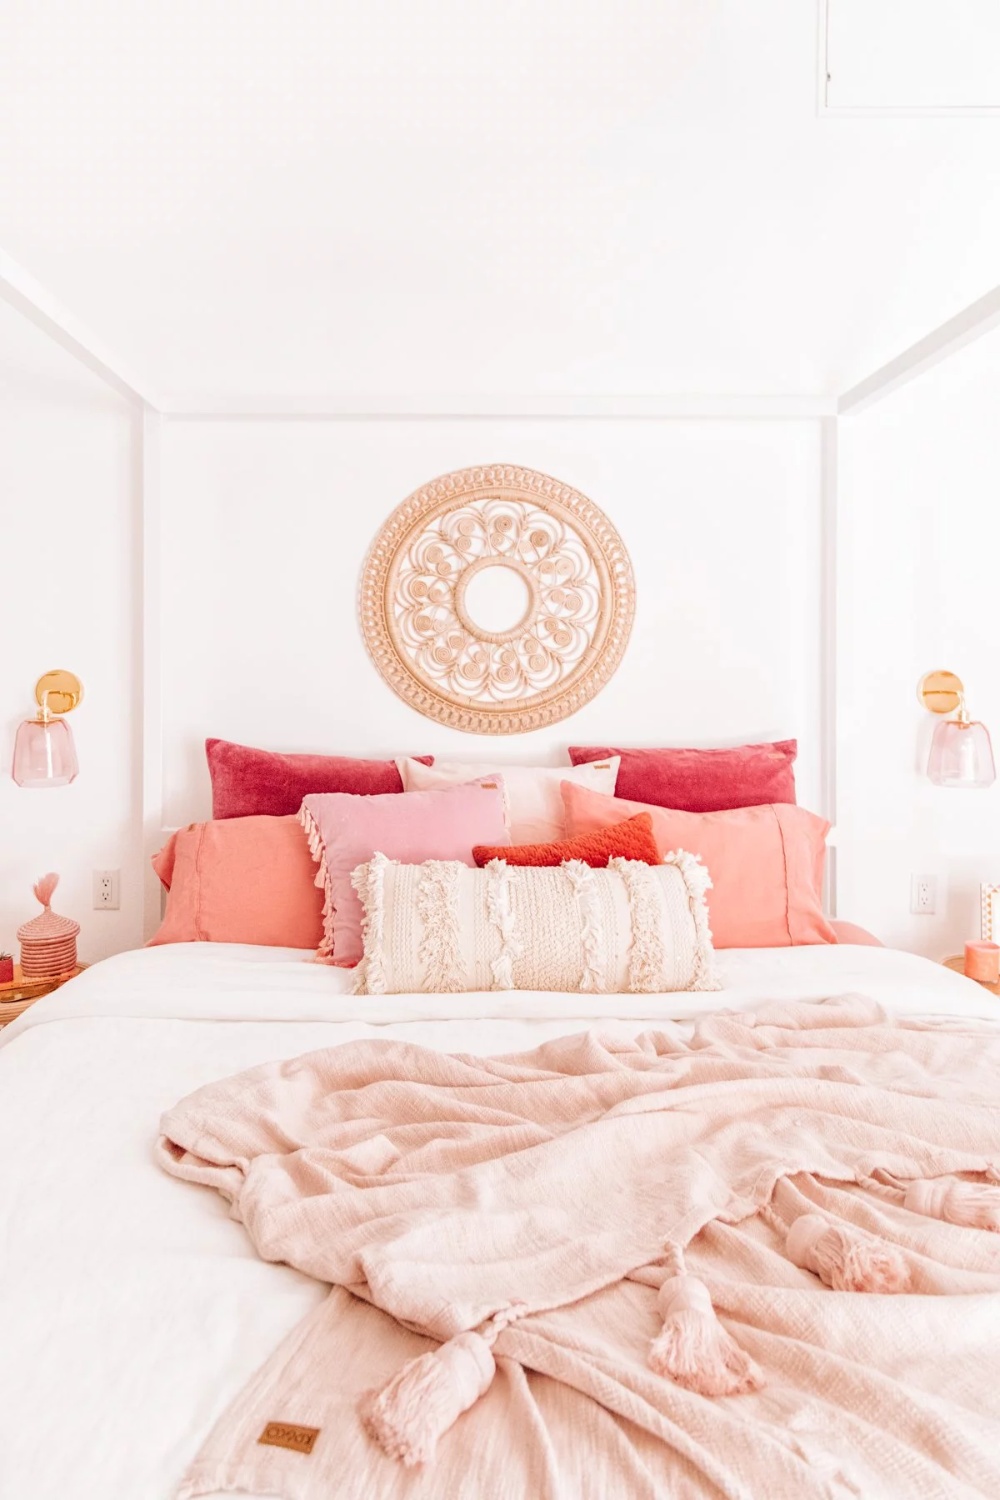 The Mindwelling: Our Master Bedroom Reveal! - Studio DIY